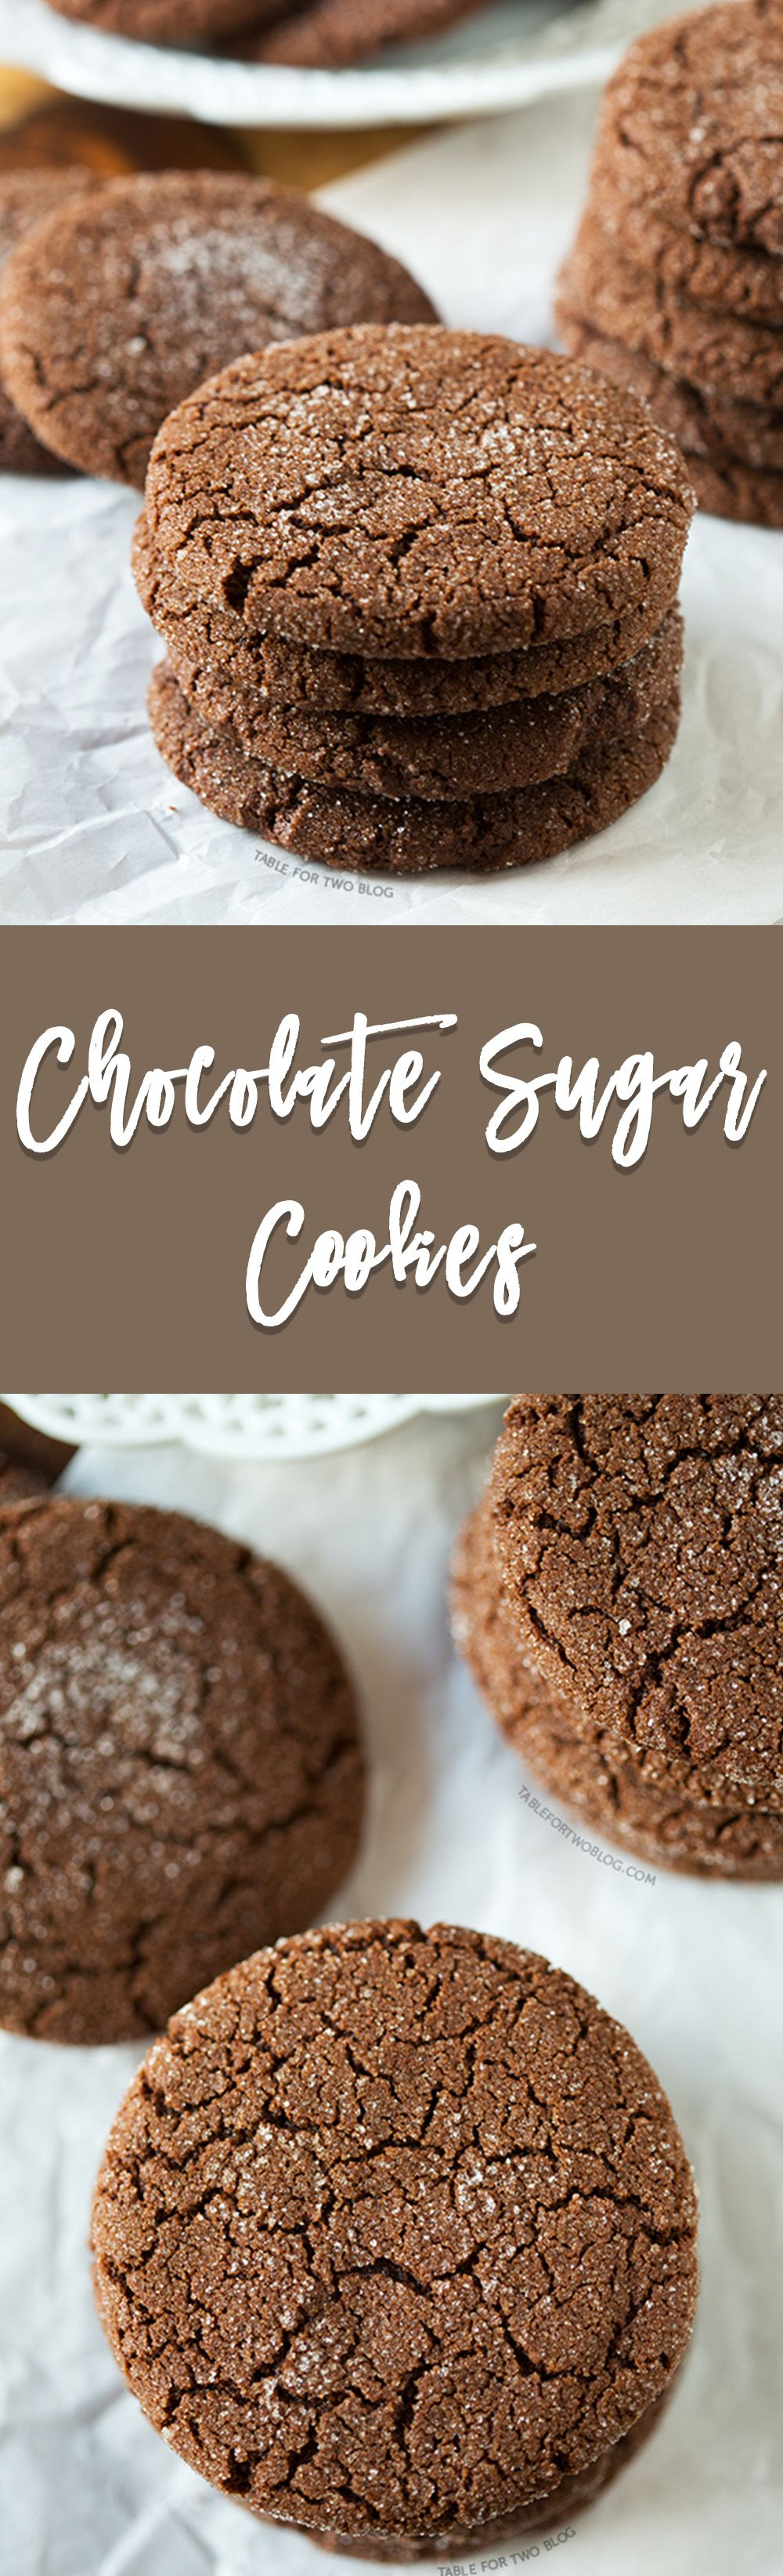 Chocolate Sugar Cookies - Table for Two® by Julie Wampler